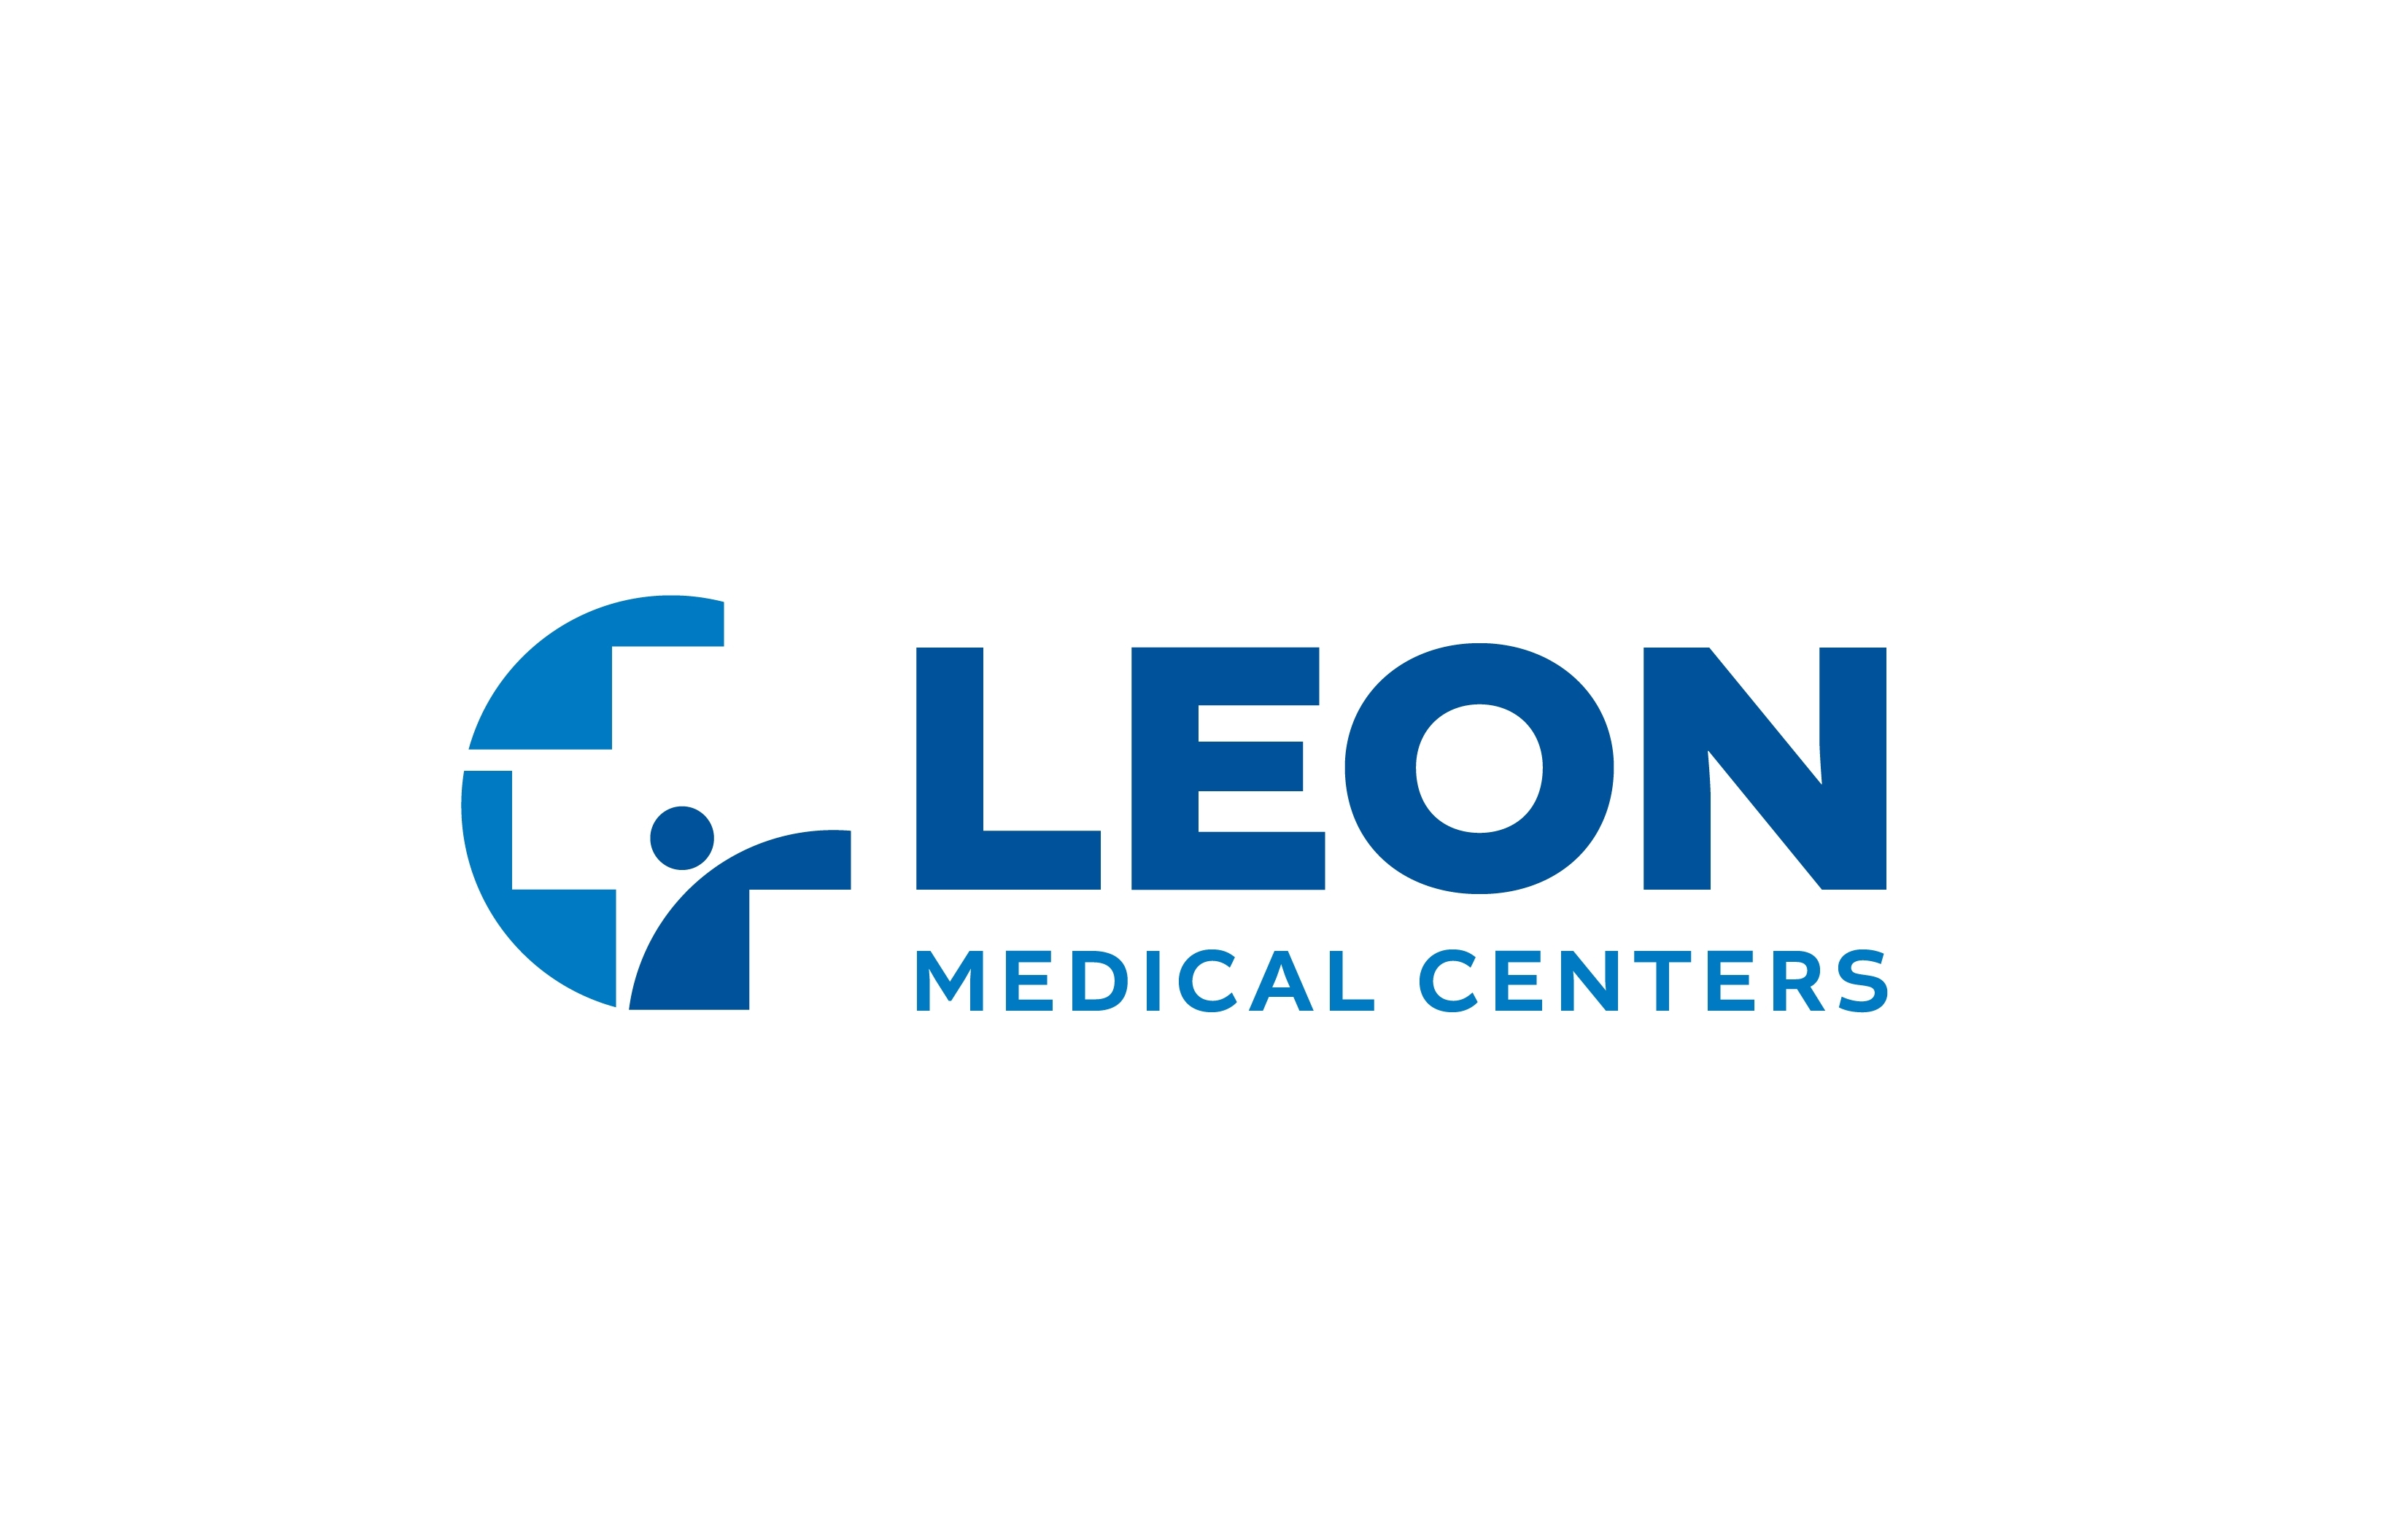 Baptist Health South Florida and Leon Medical Centers/Leon